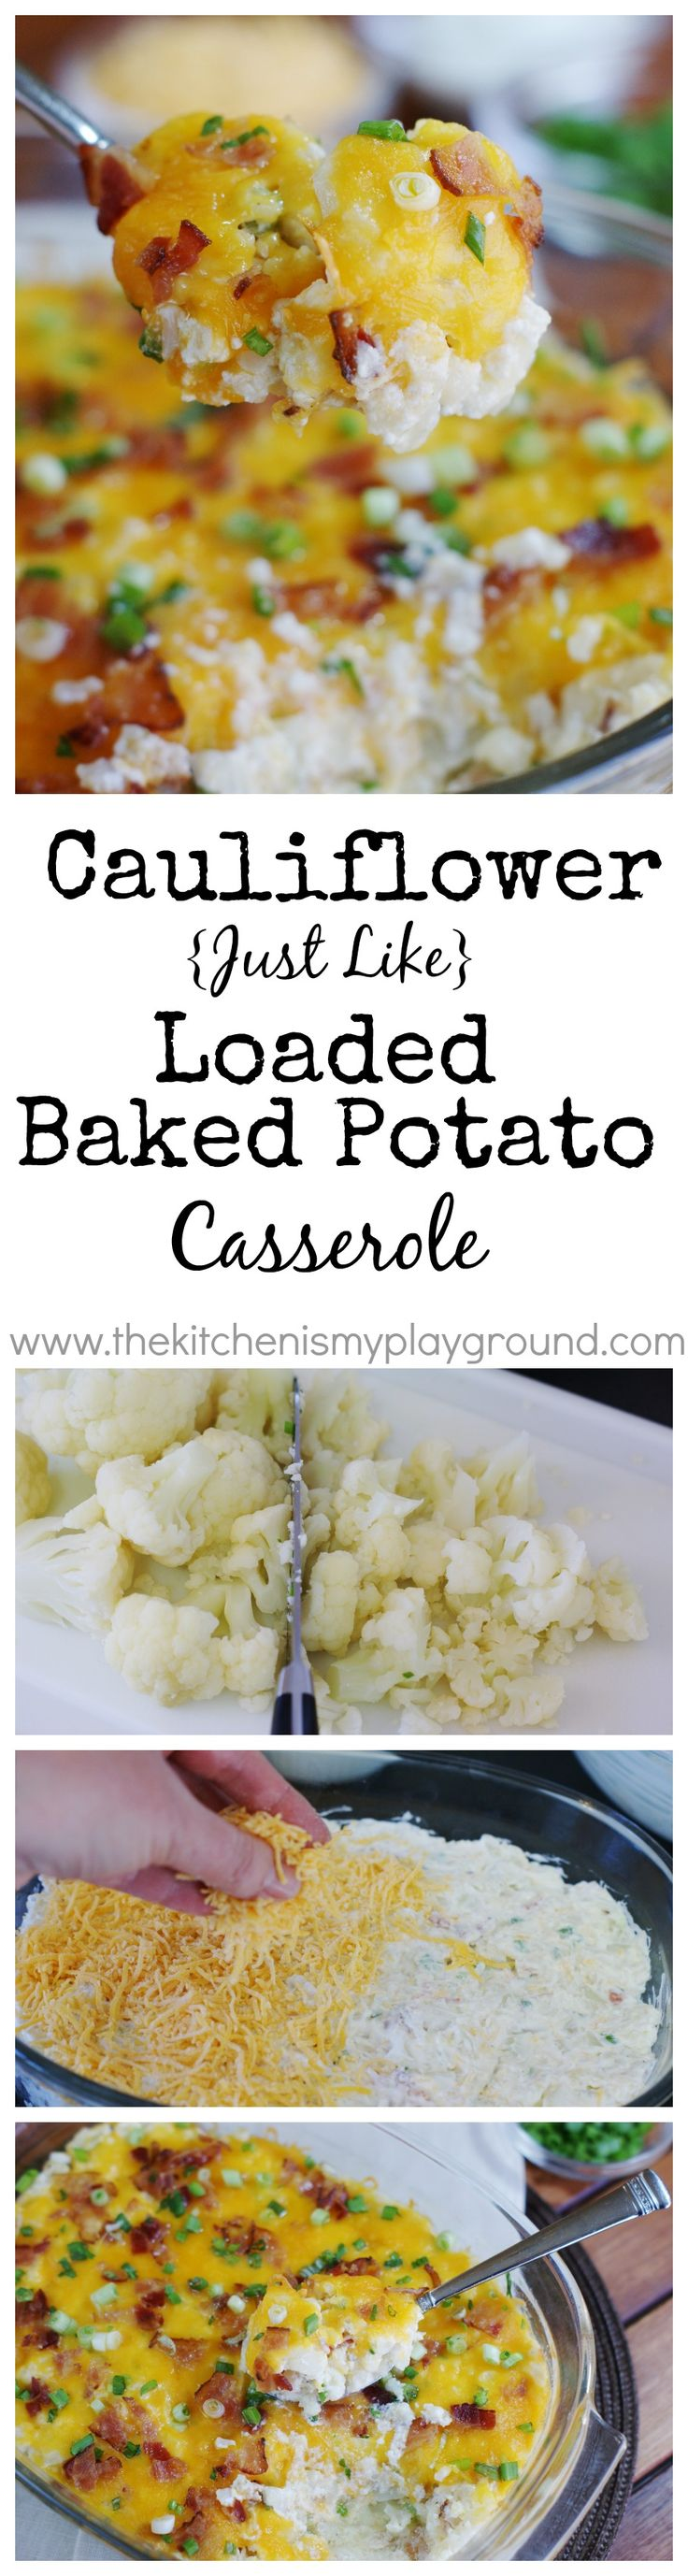 Cauliflower {Just Like} Loaded Baked Potato Casserole ~ you certainly will not miss the potato. This has all the loaded flavor without it.